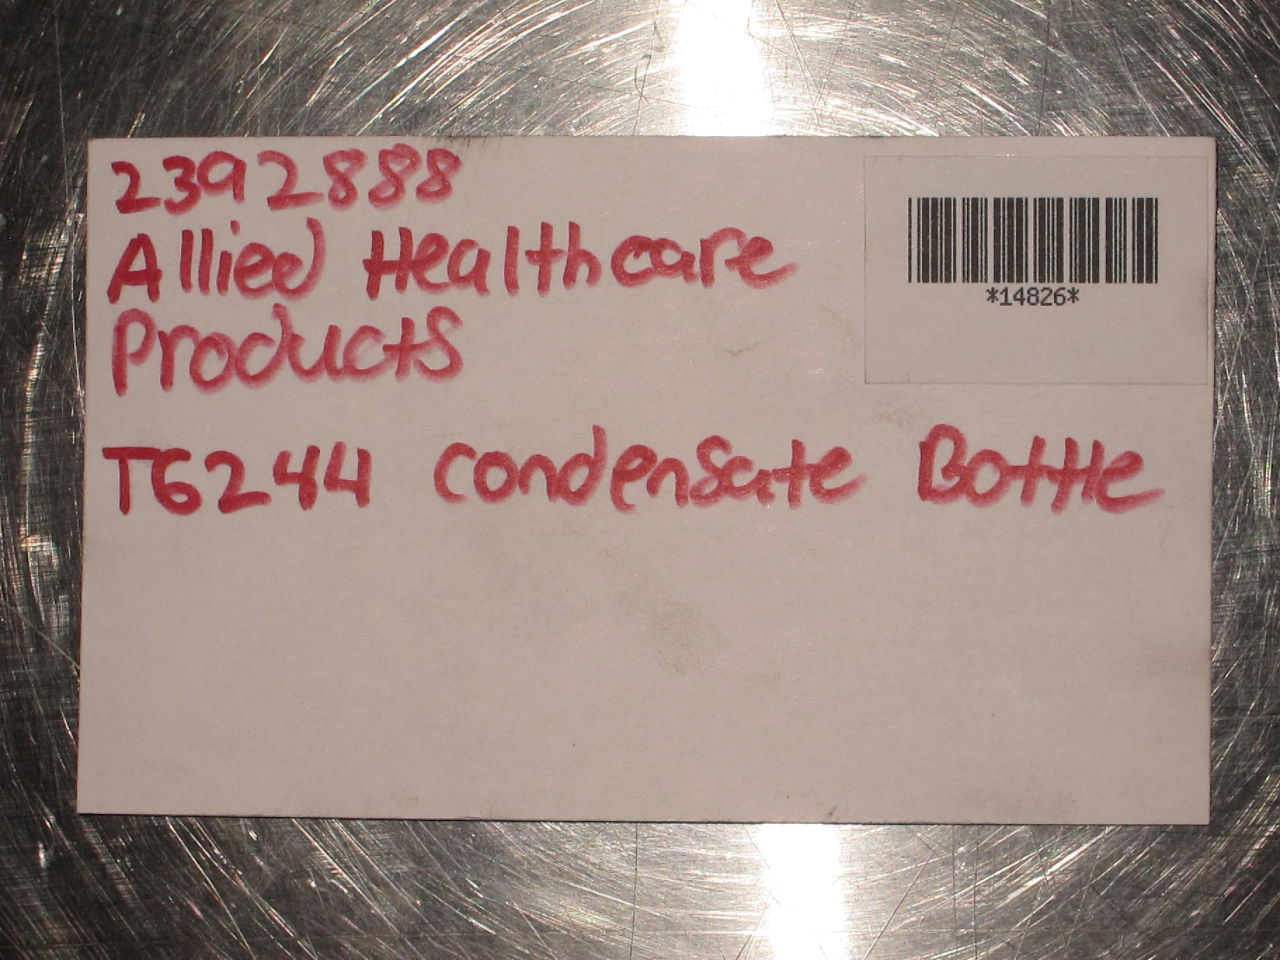 ALLIED HEALTHCARE T6244 Condensate Bottle